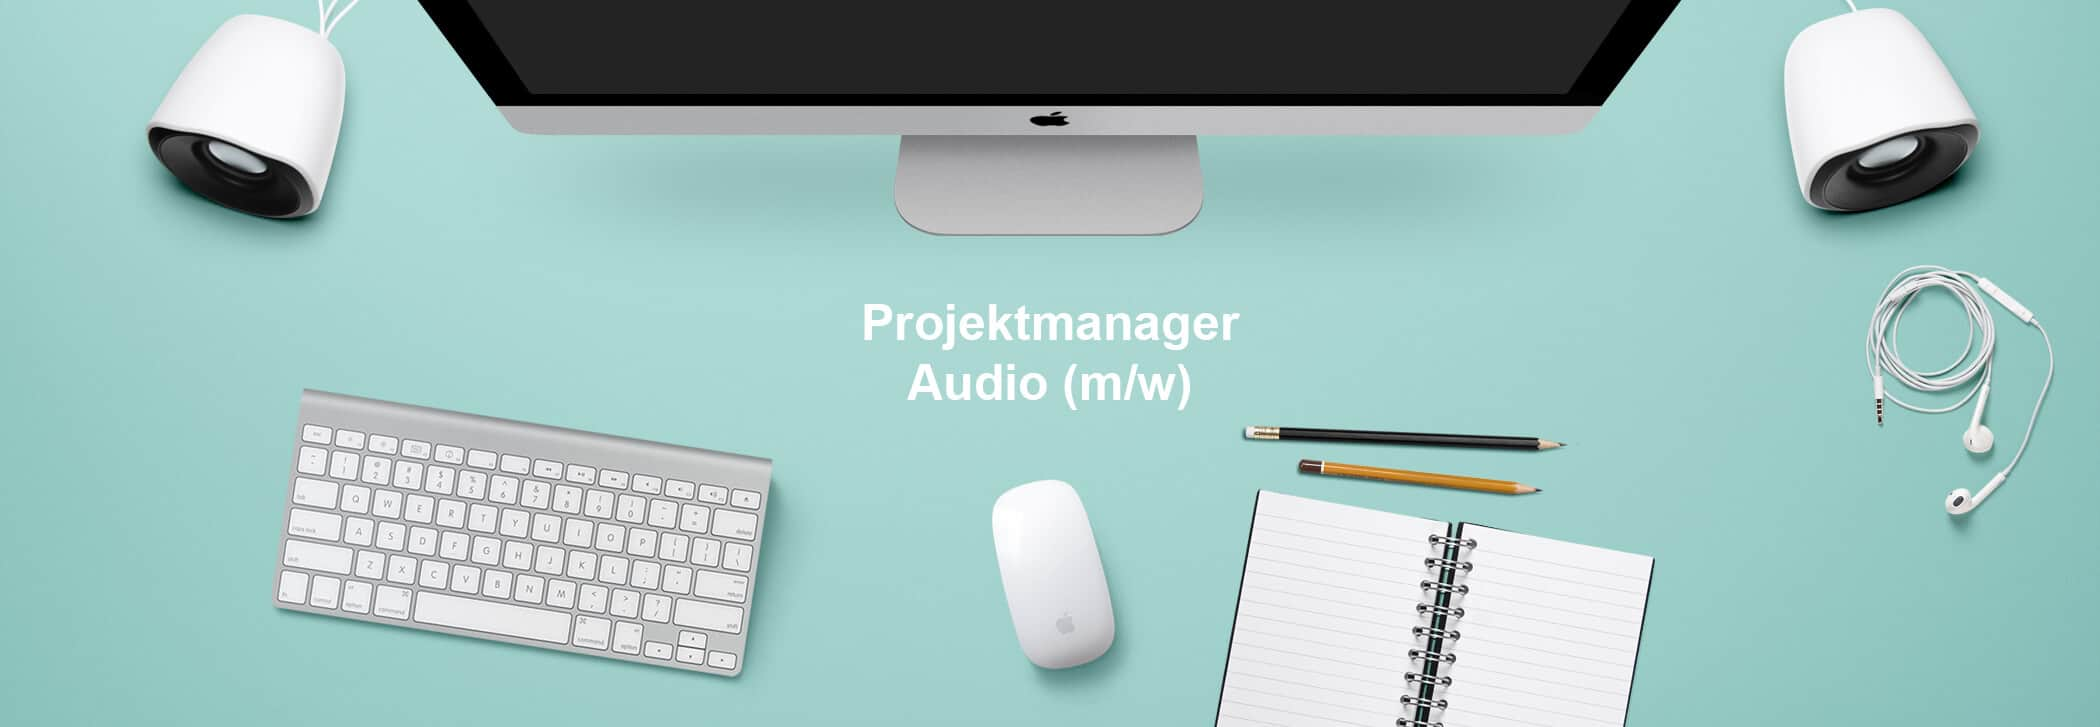 Projektmanager-Audio